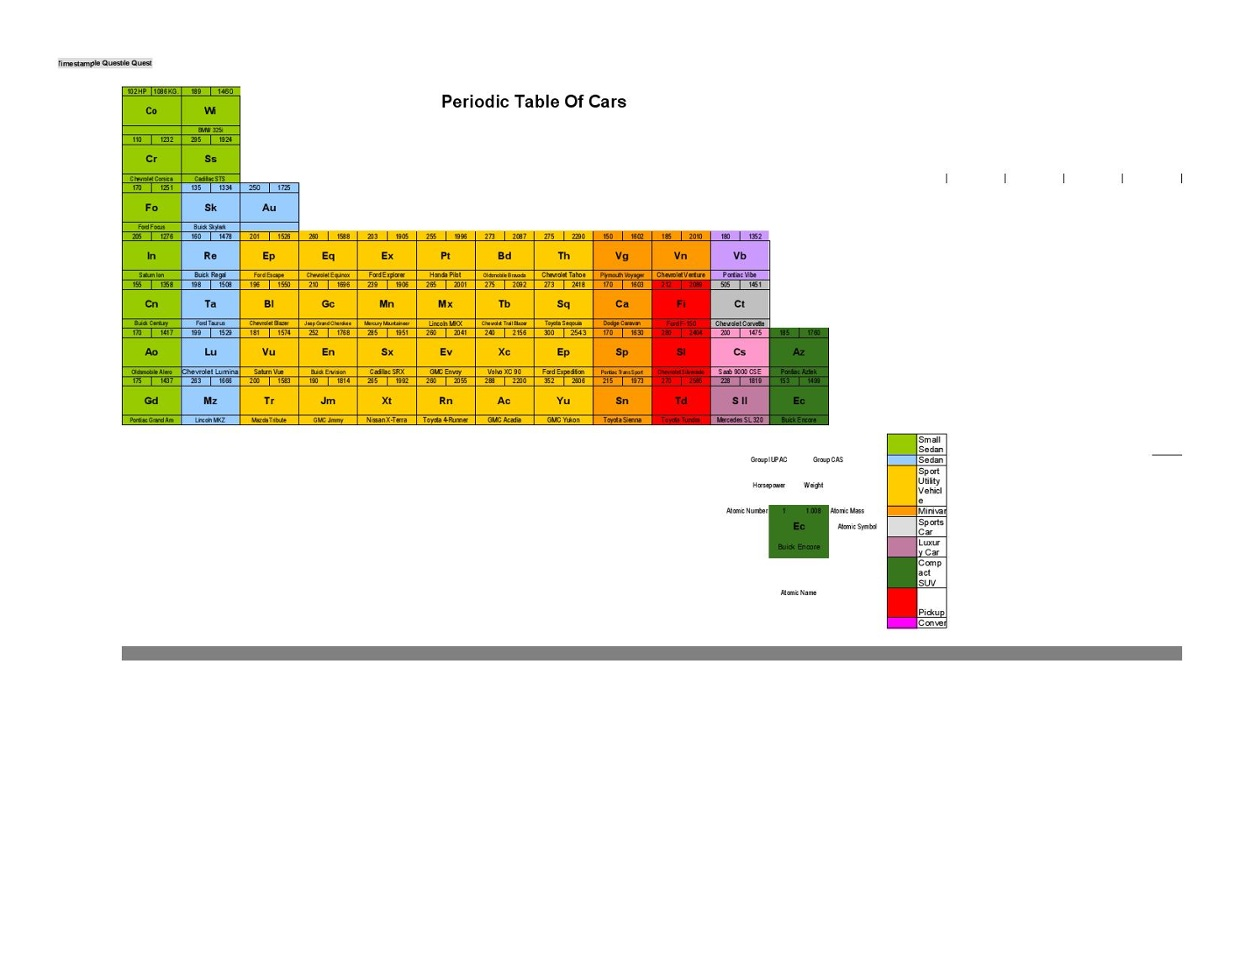 Periodic table of cars ronnie parrillo 8 3 thinglink gamestrikefo Images